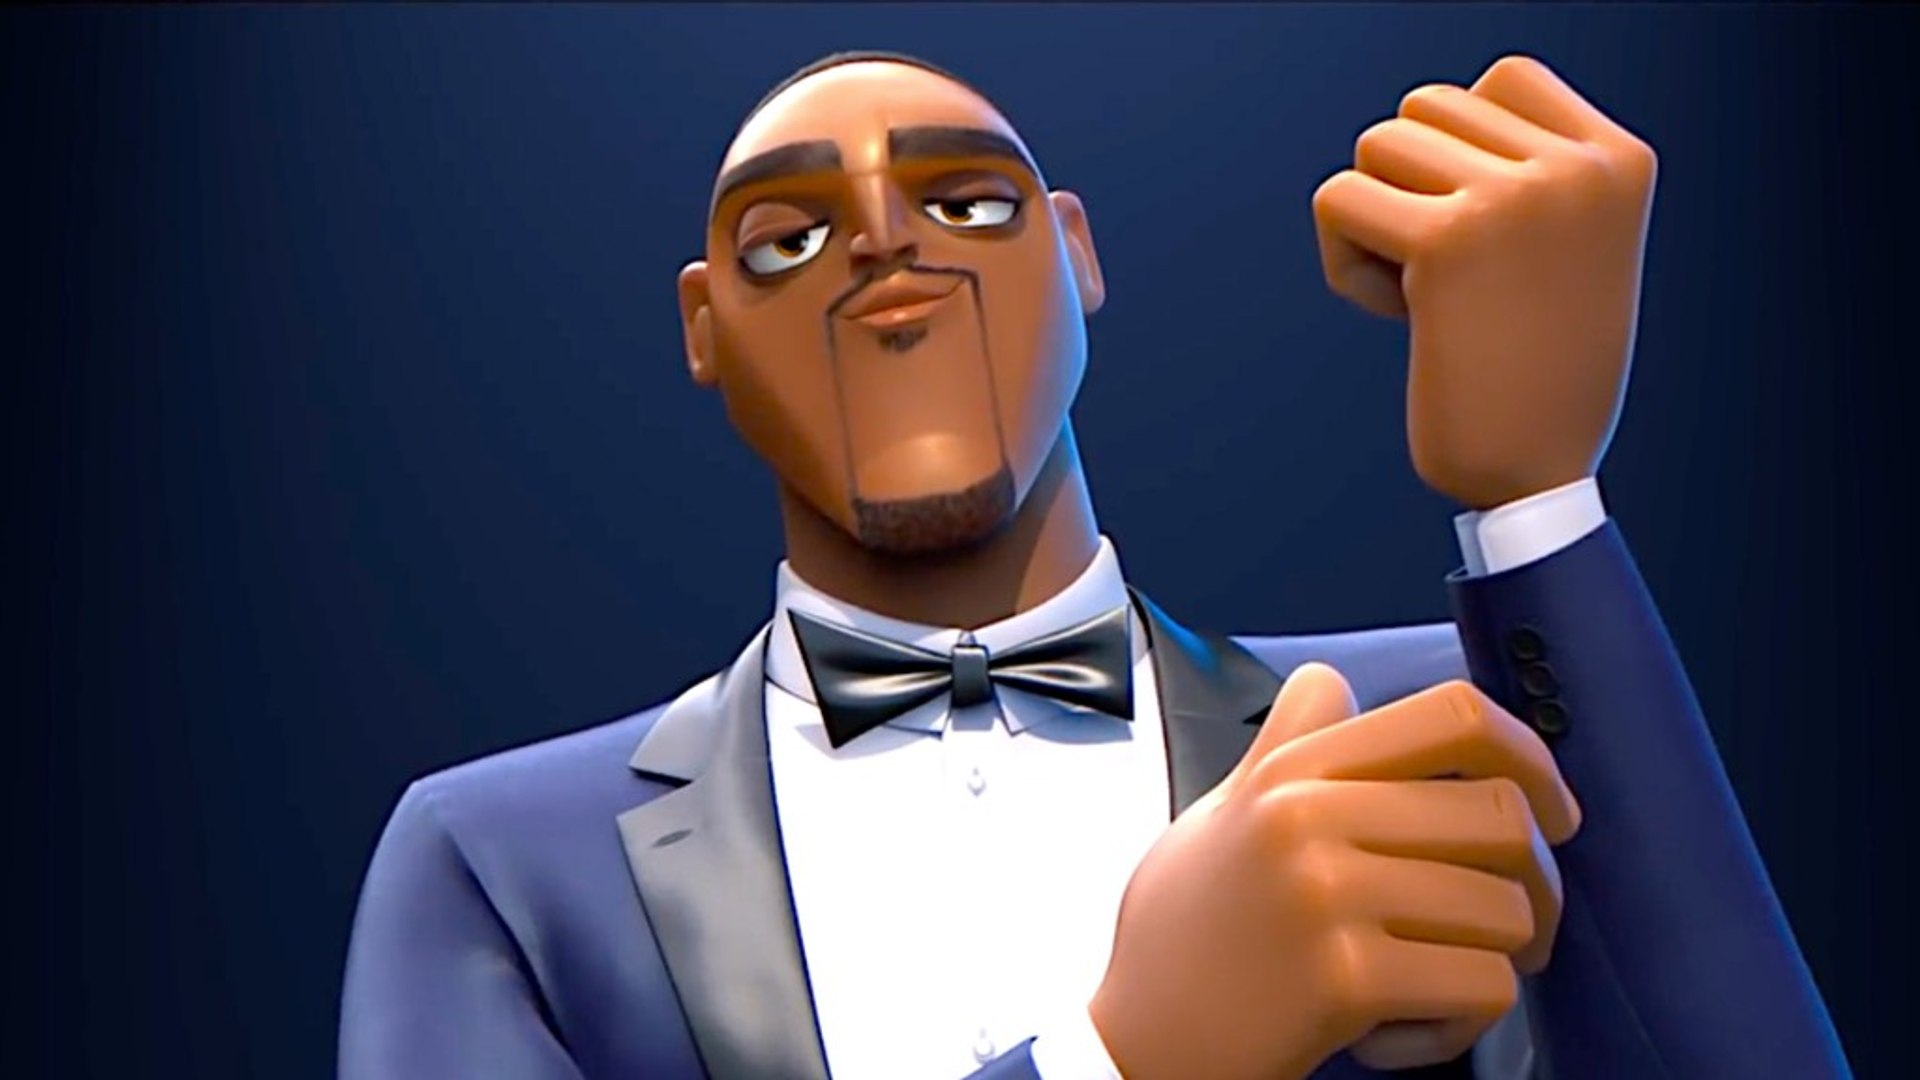 Spies in Disguise with Will Smith - Official Teaser Trailer